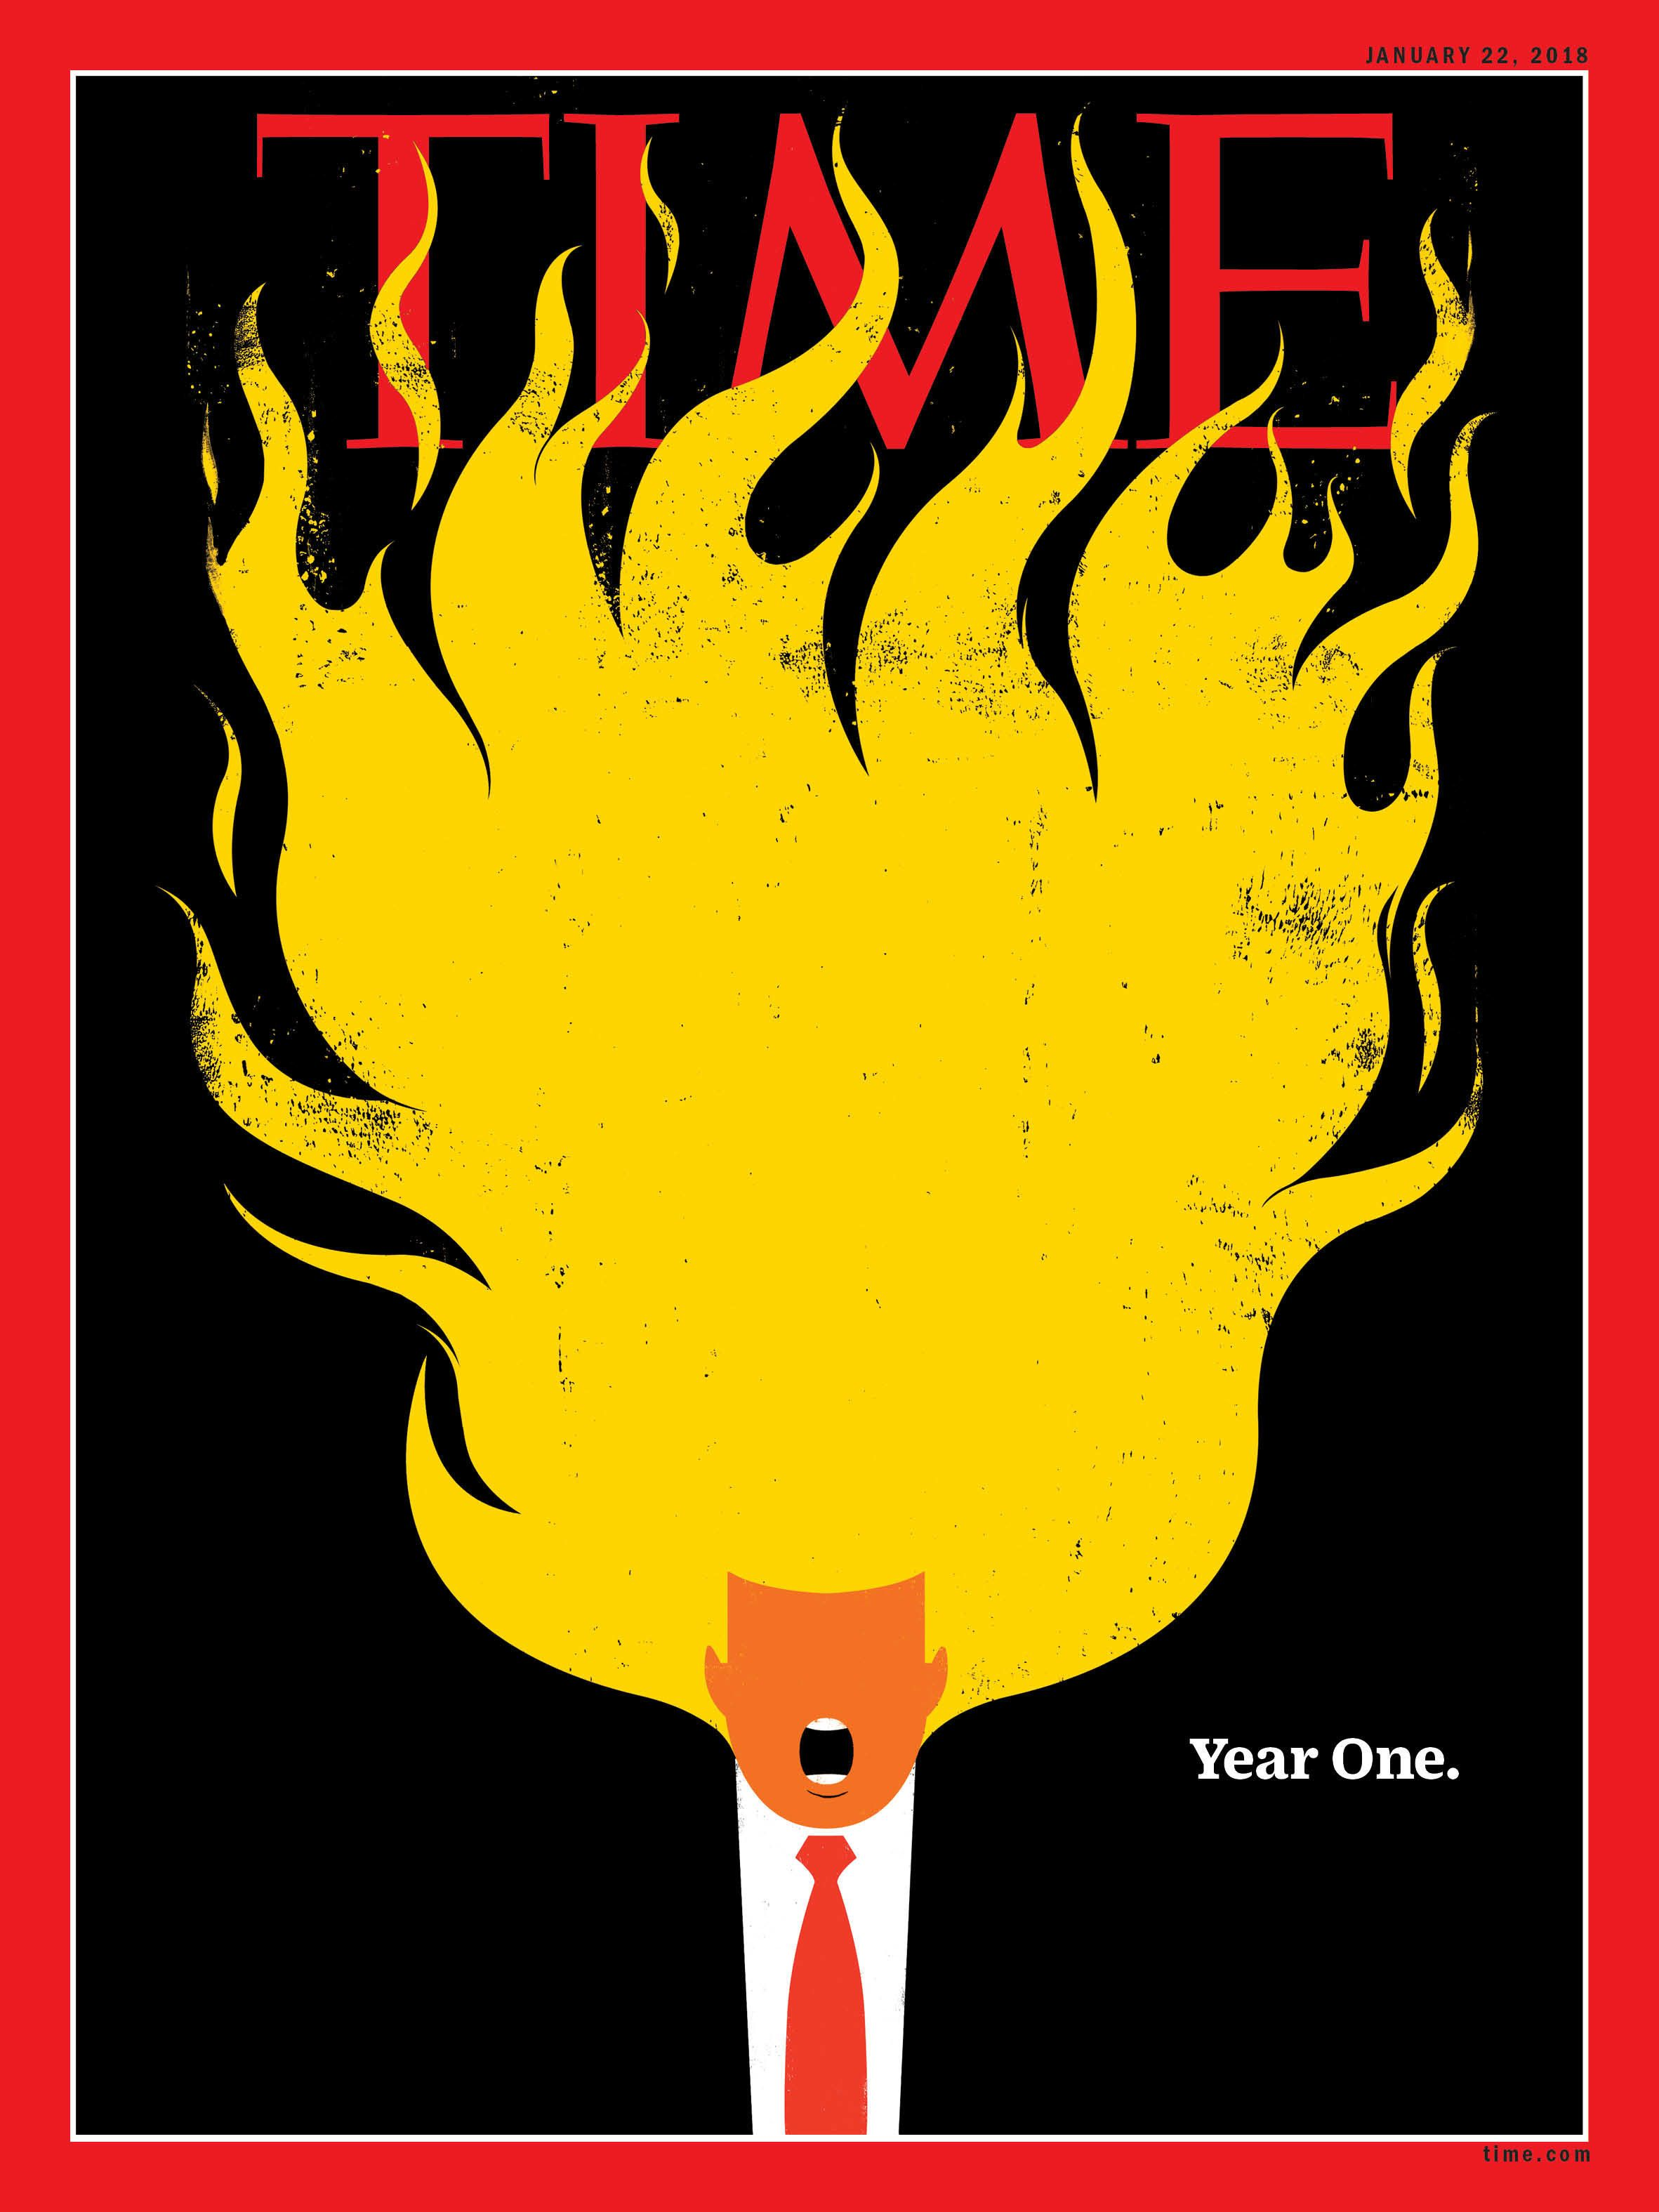 Time Magazine's Latest Cover Has Trump's Hair On Fire To Illustrate Hellish